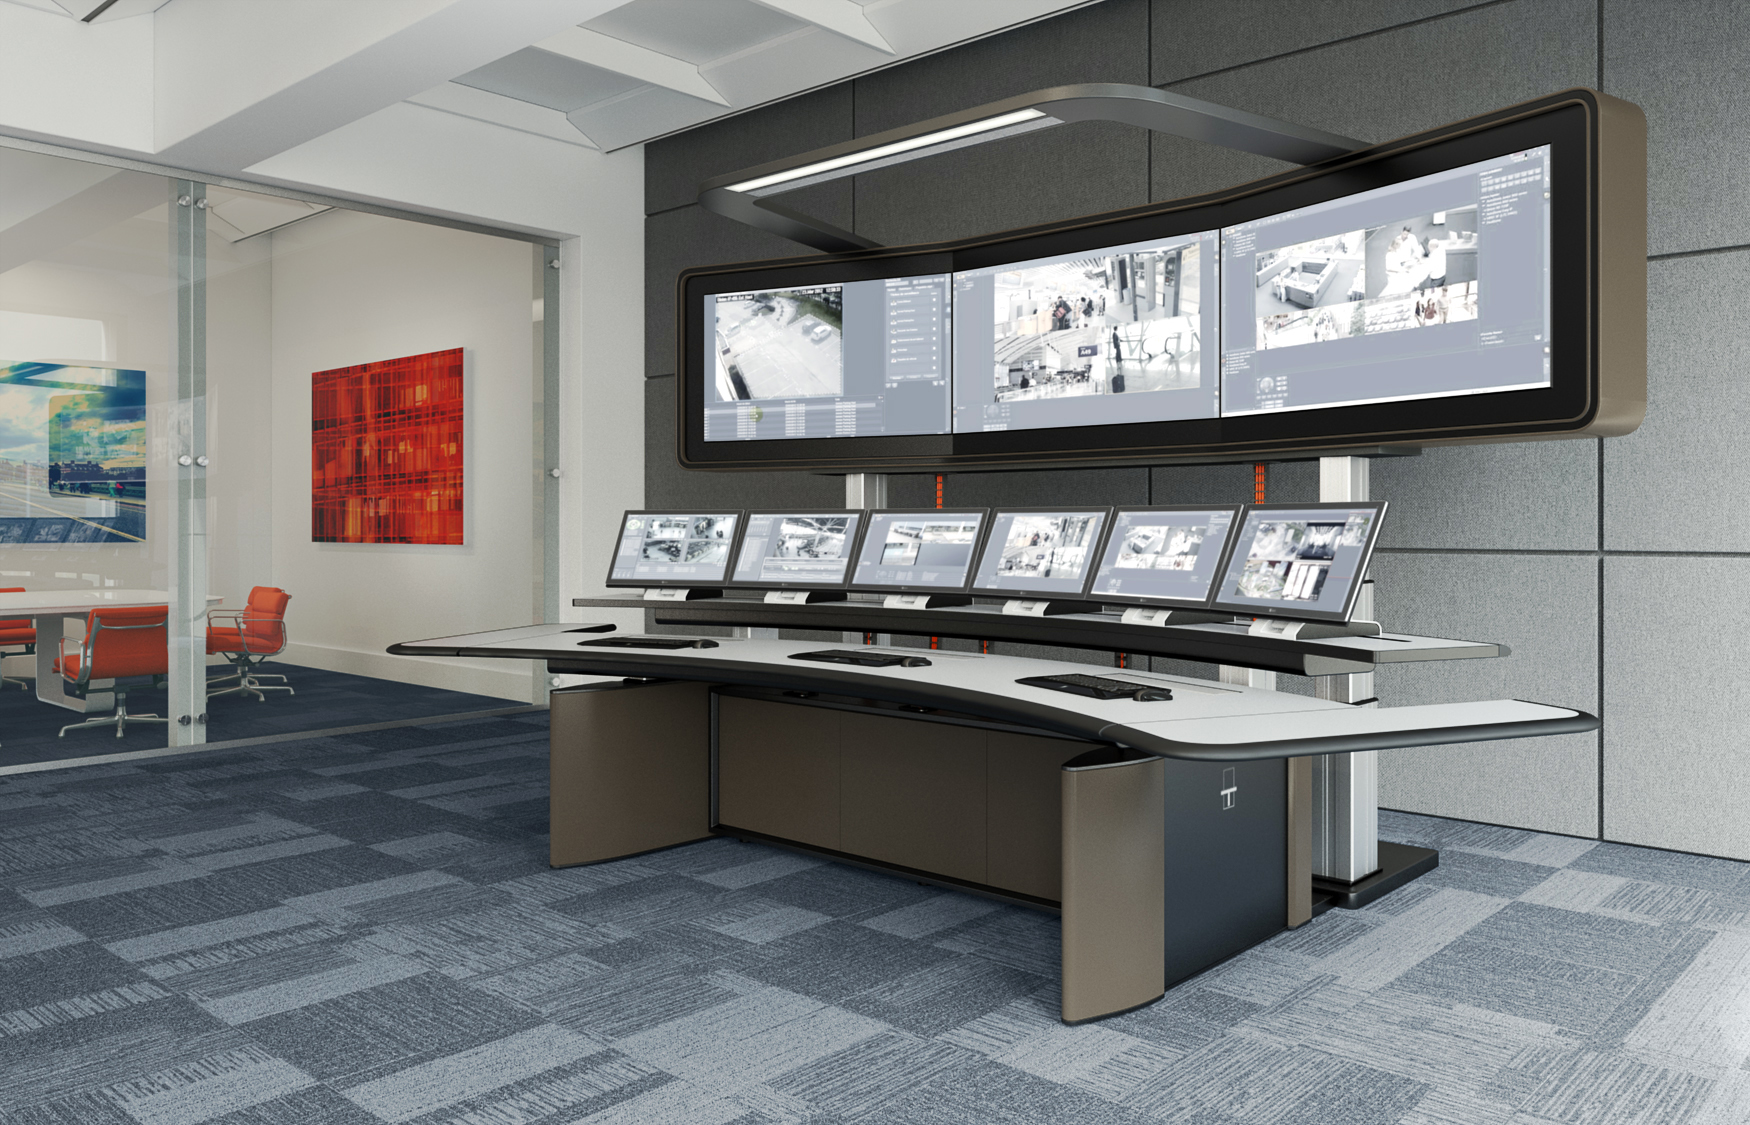 LARGE SCREEN DISPLAY SYSTEMS